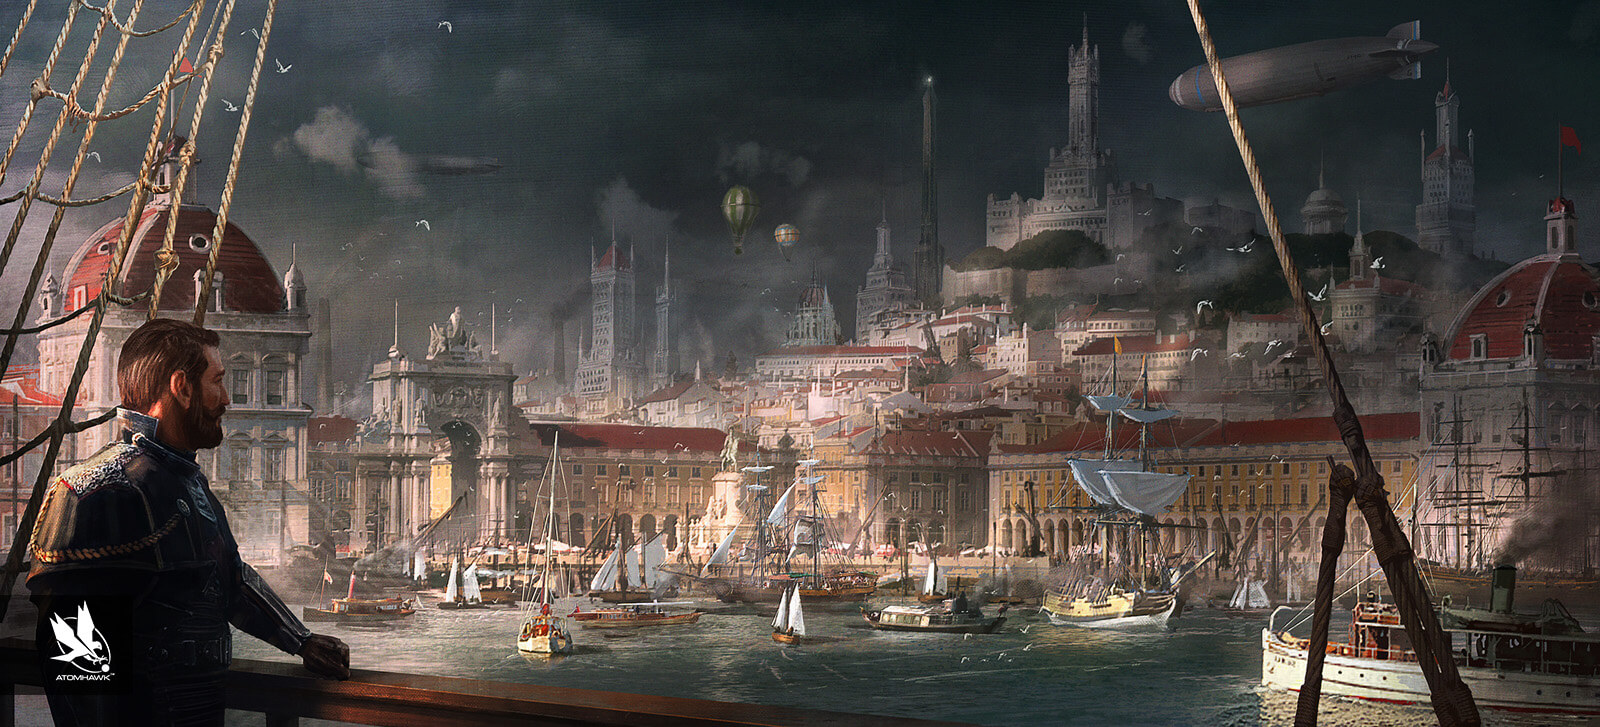 Atomhawk_Sony_The-Order-1866_Marketing-Art_Lisbon.jpg